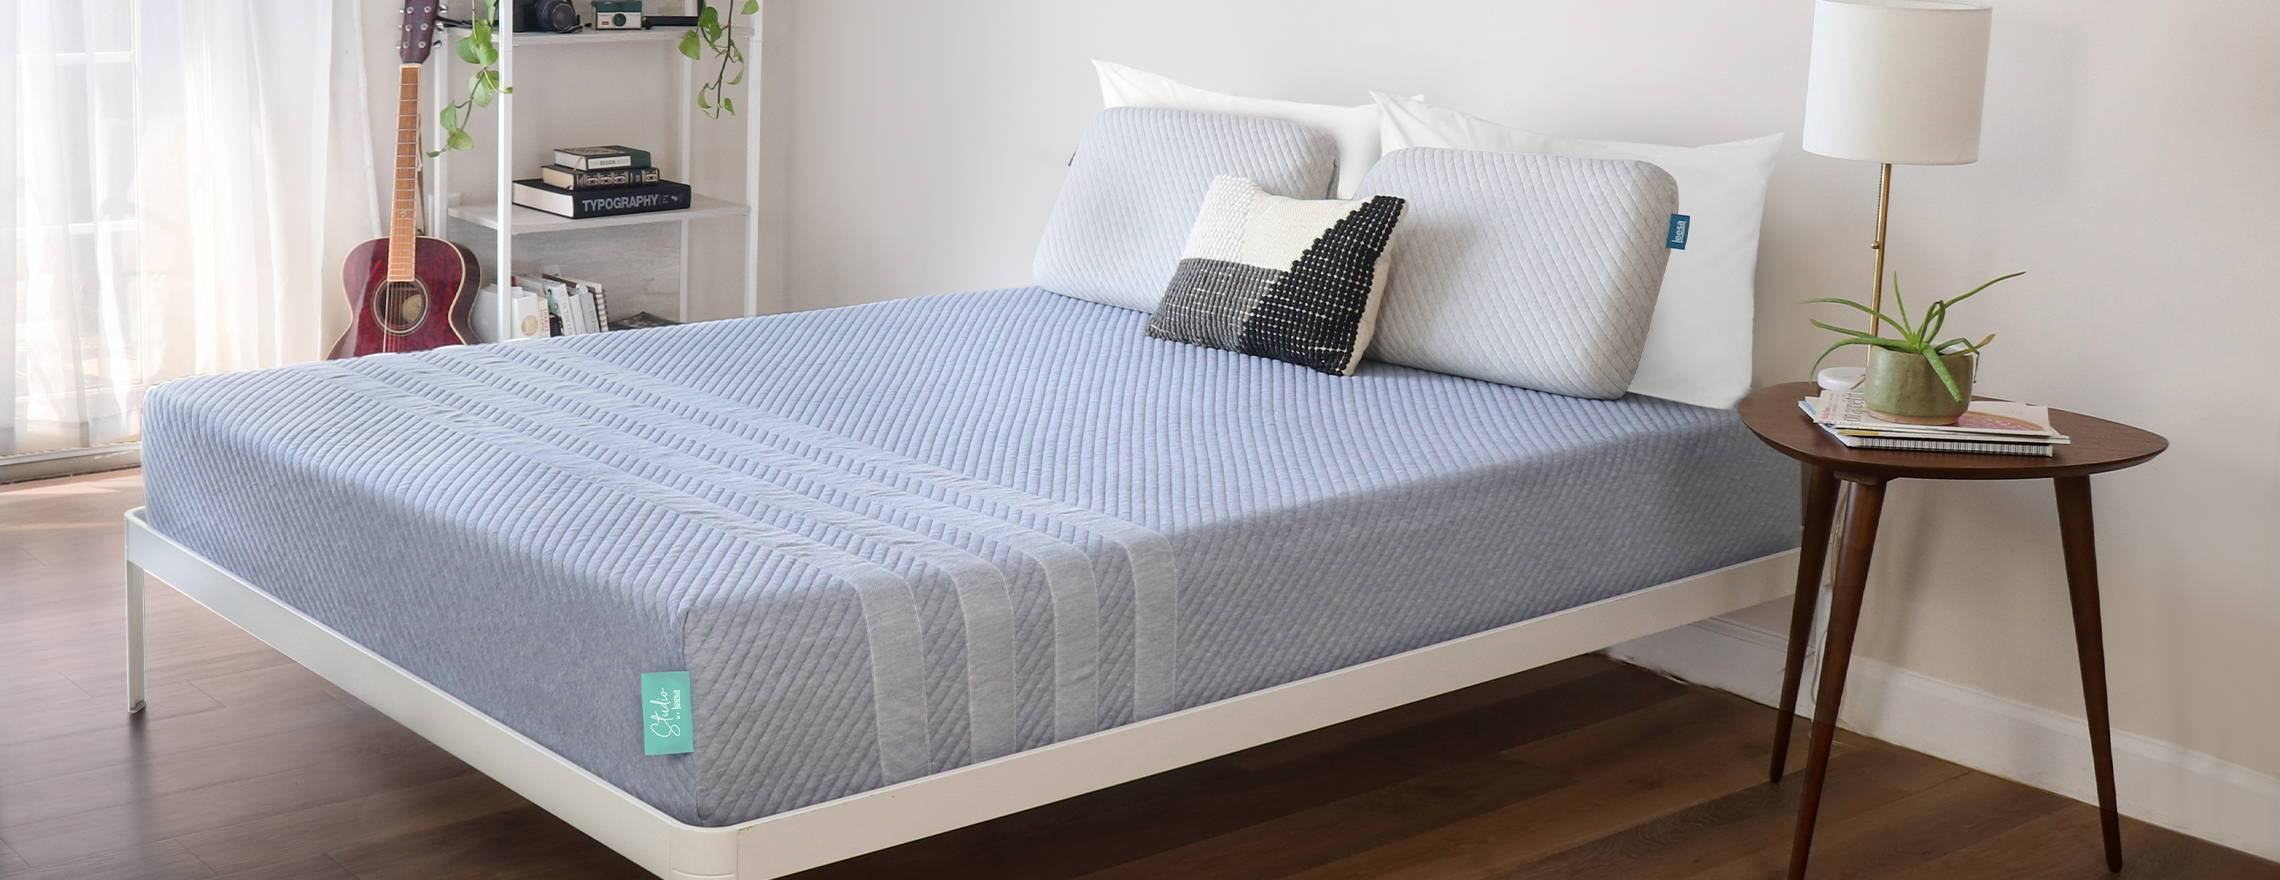 gray_leesa_mattress_with_pillows_in_decorated_bedroom